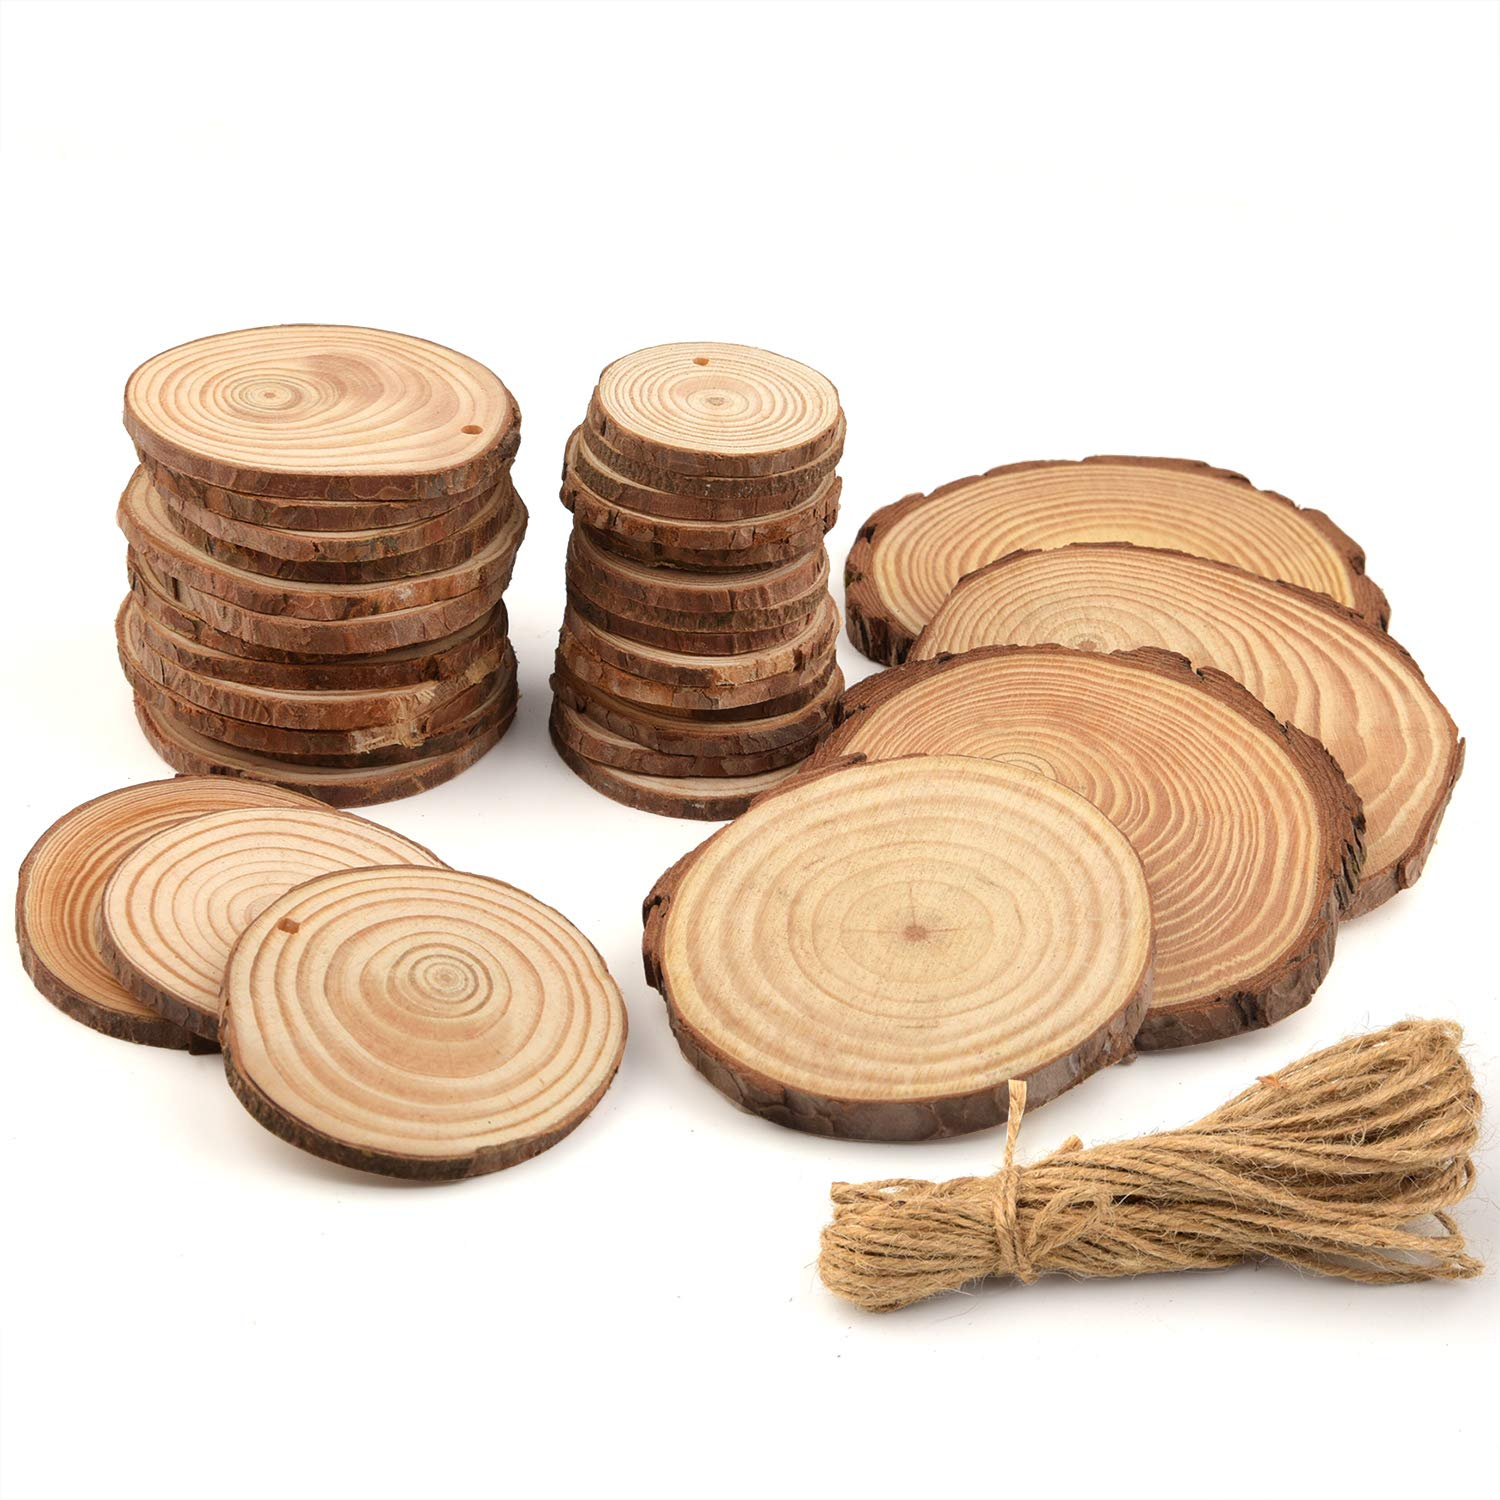 20Pcs Round Log Slices Discs Wooden Wood Crafts Centerpieces Wedding Decor RO